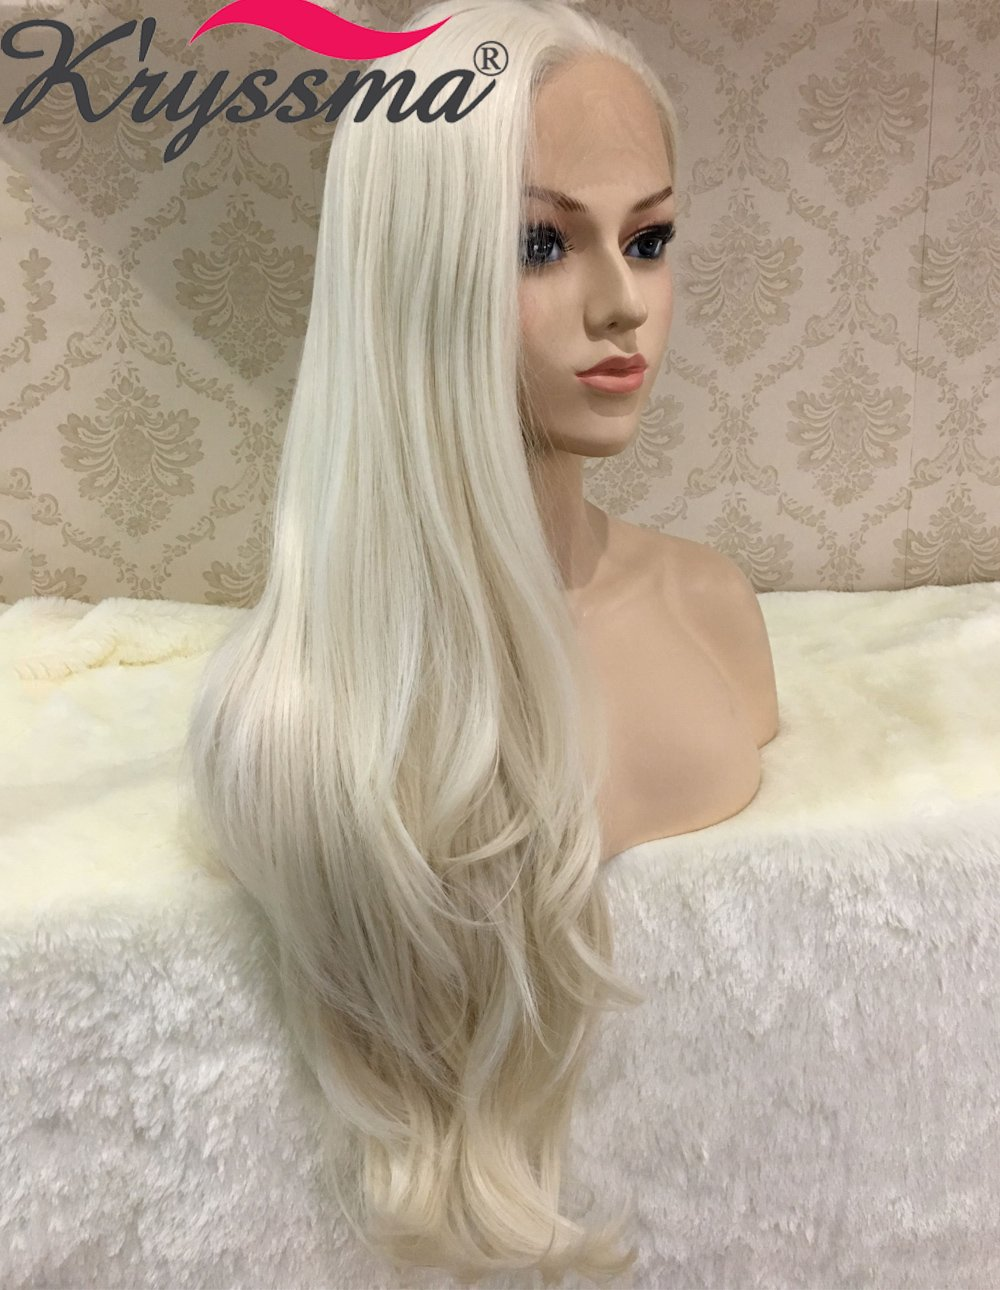 K ryssma Naurual Wavy White Blonde Lace Front Wigs for White Women  Realistic Looking Synthetic 84f99ed99b